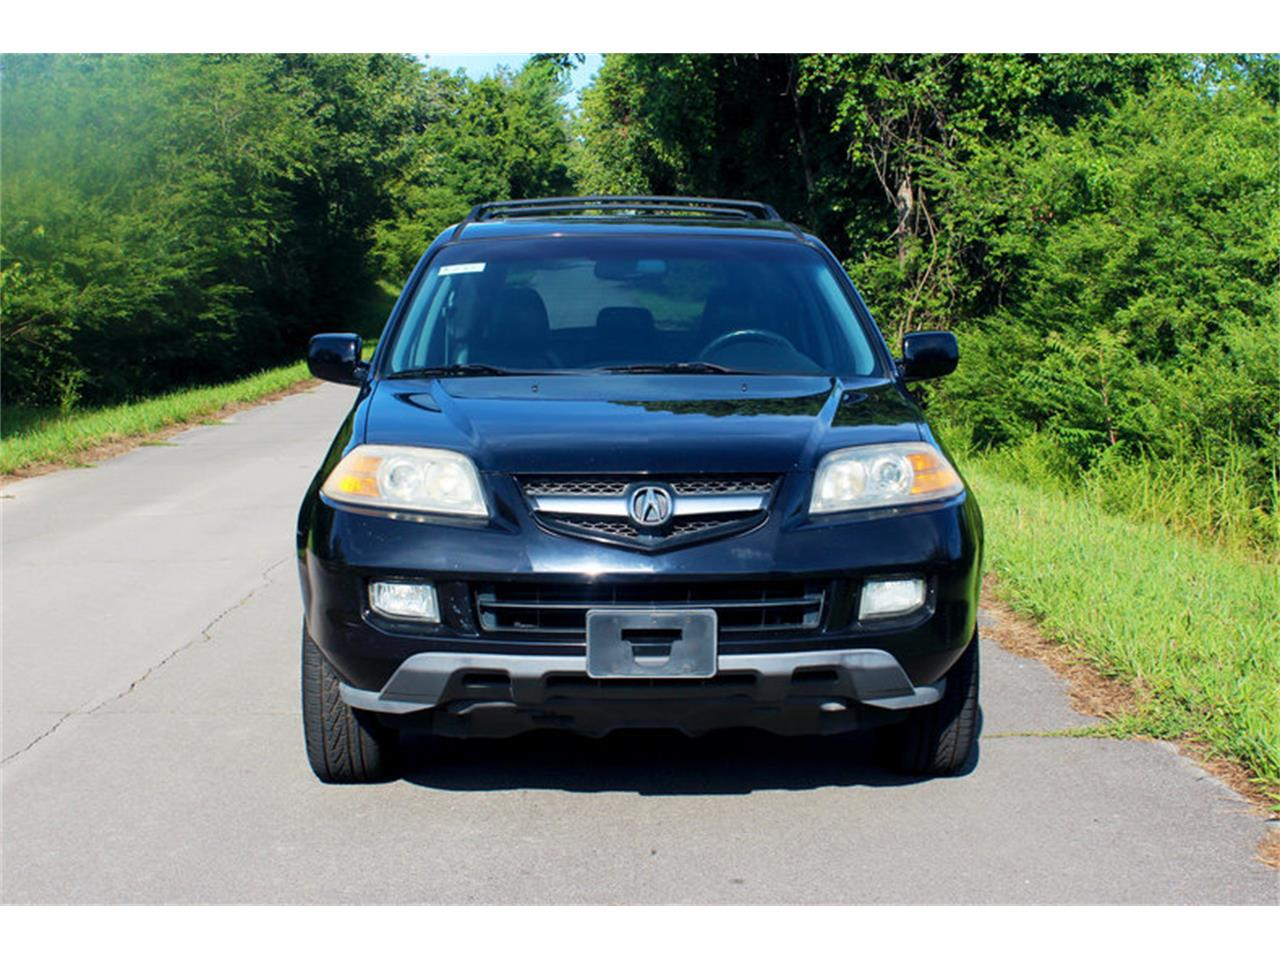 Large Picture of 2005 Acura MDX - $3,995.00 - O91K